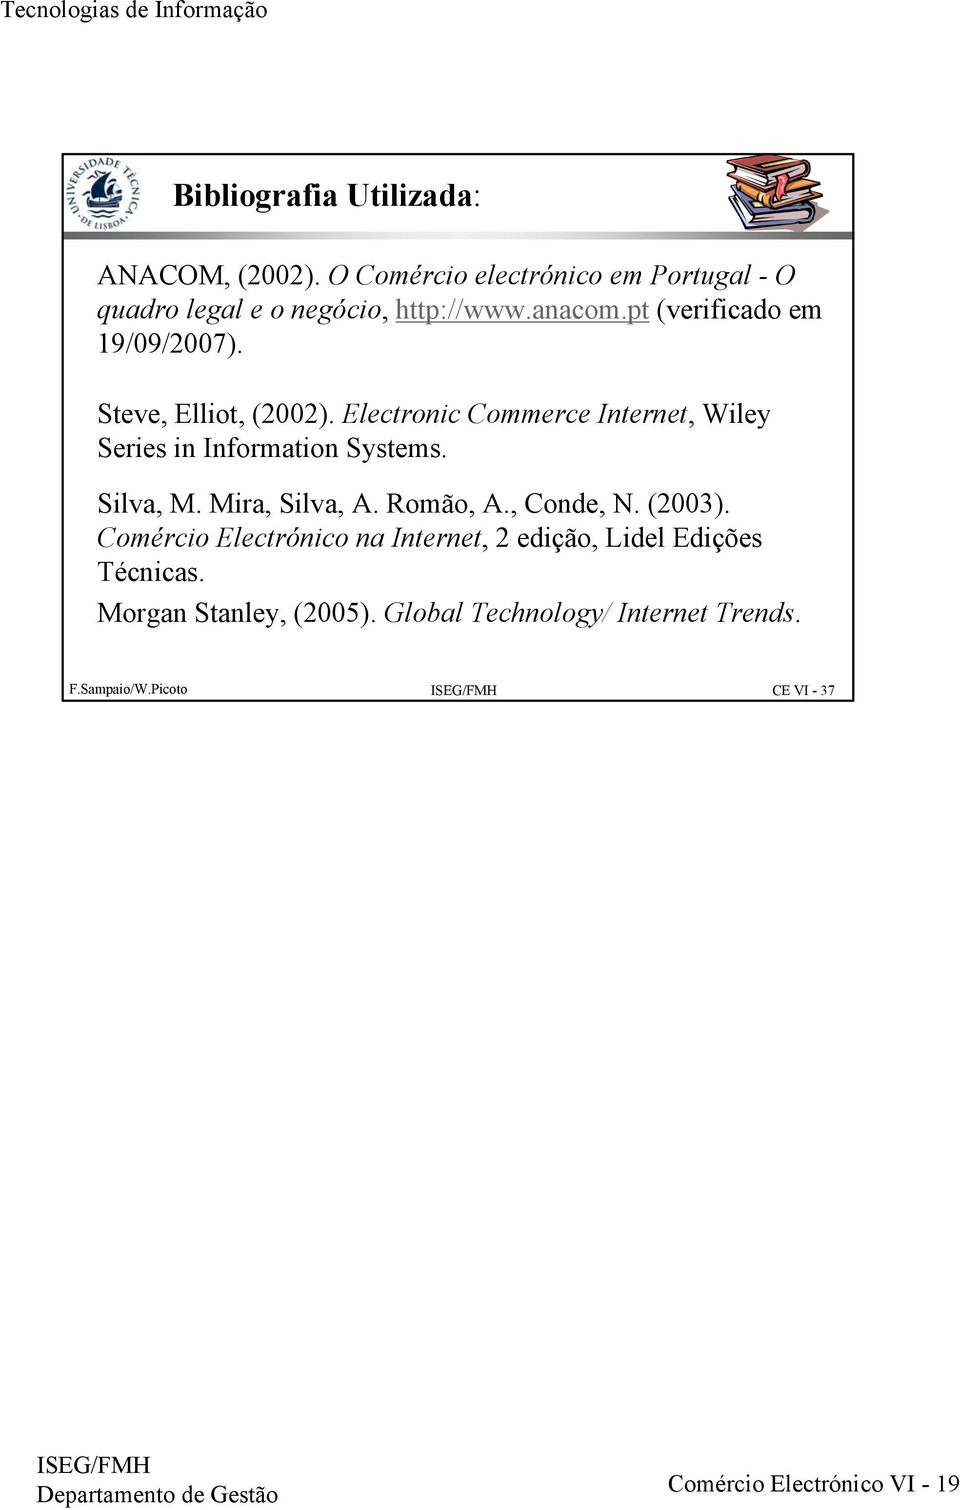 Electronic Commerce Internet, Wiley Series in Information Systems. Silva, M. Mira, Silva, A. Romão, A., Conde, N.